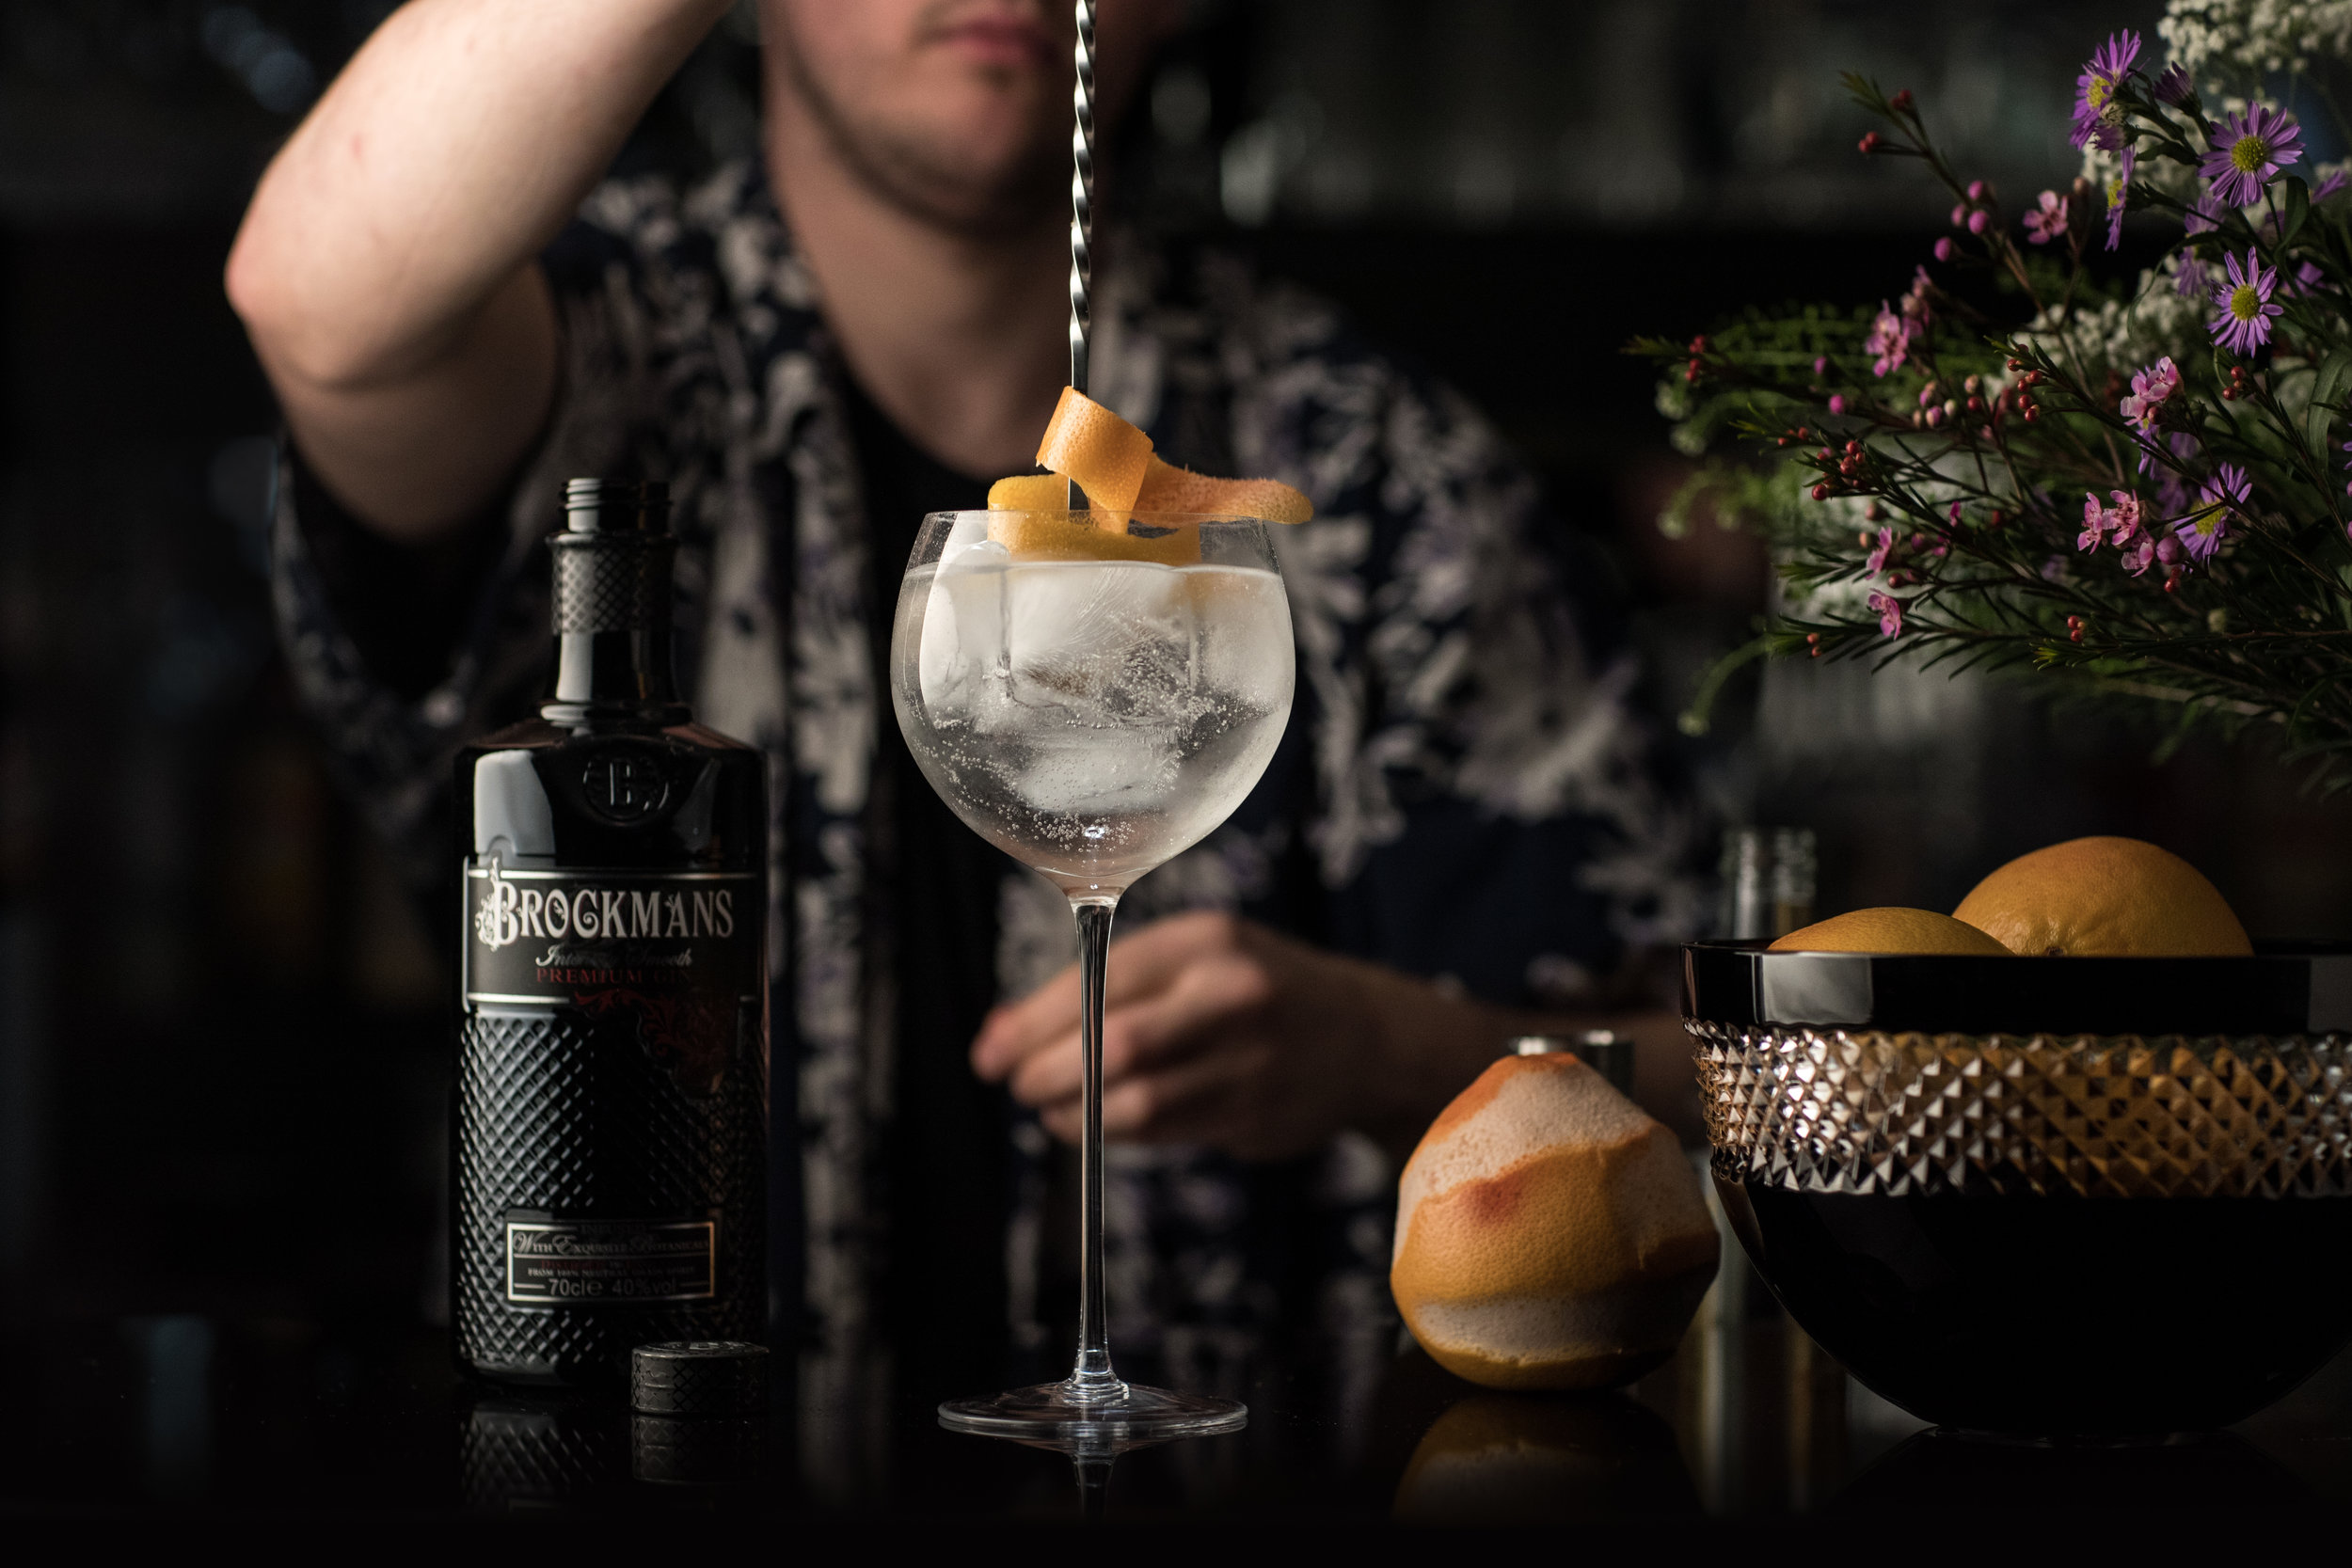 Brockman's Gin Co-Founder Bob Fowkes - On the gin boom, the secret to a great G&T, and why he made a gin that doesn't taste like, well, gin.